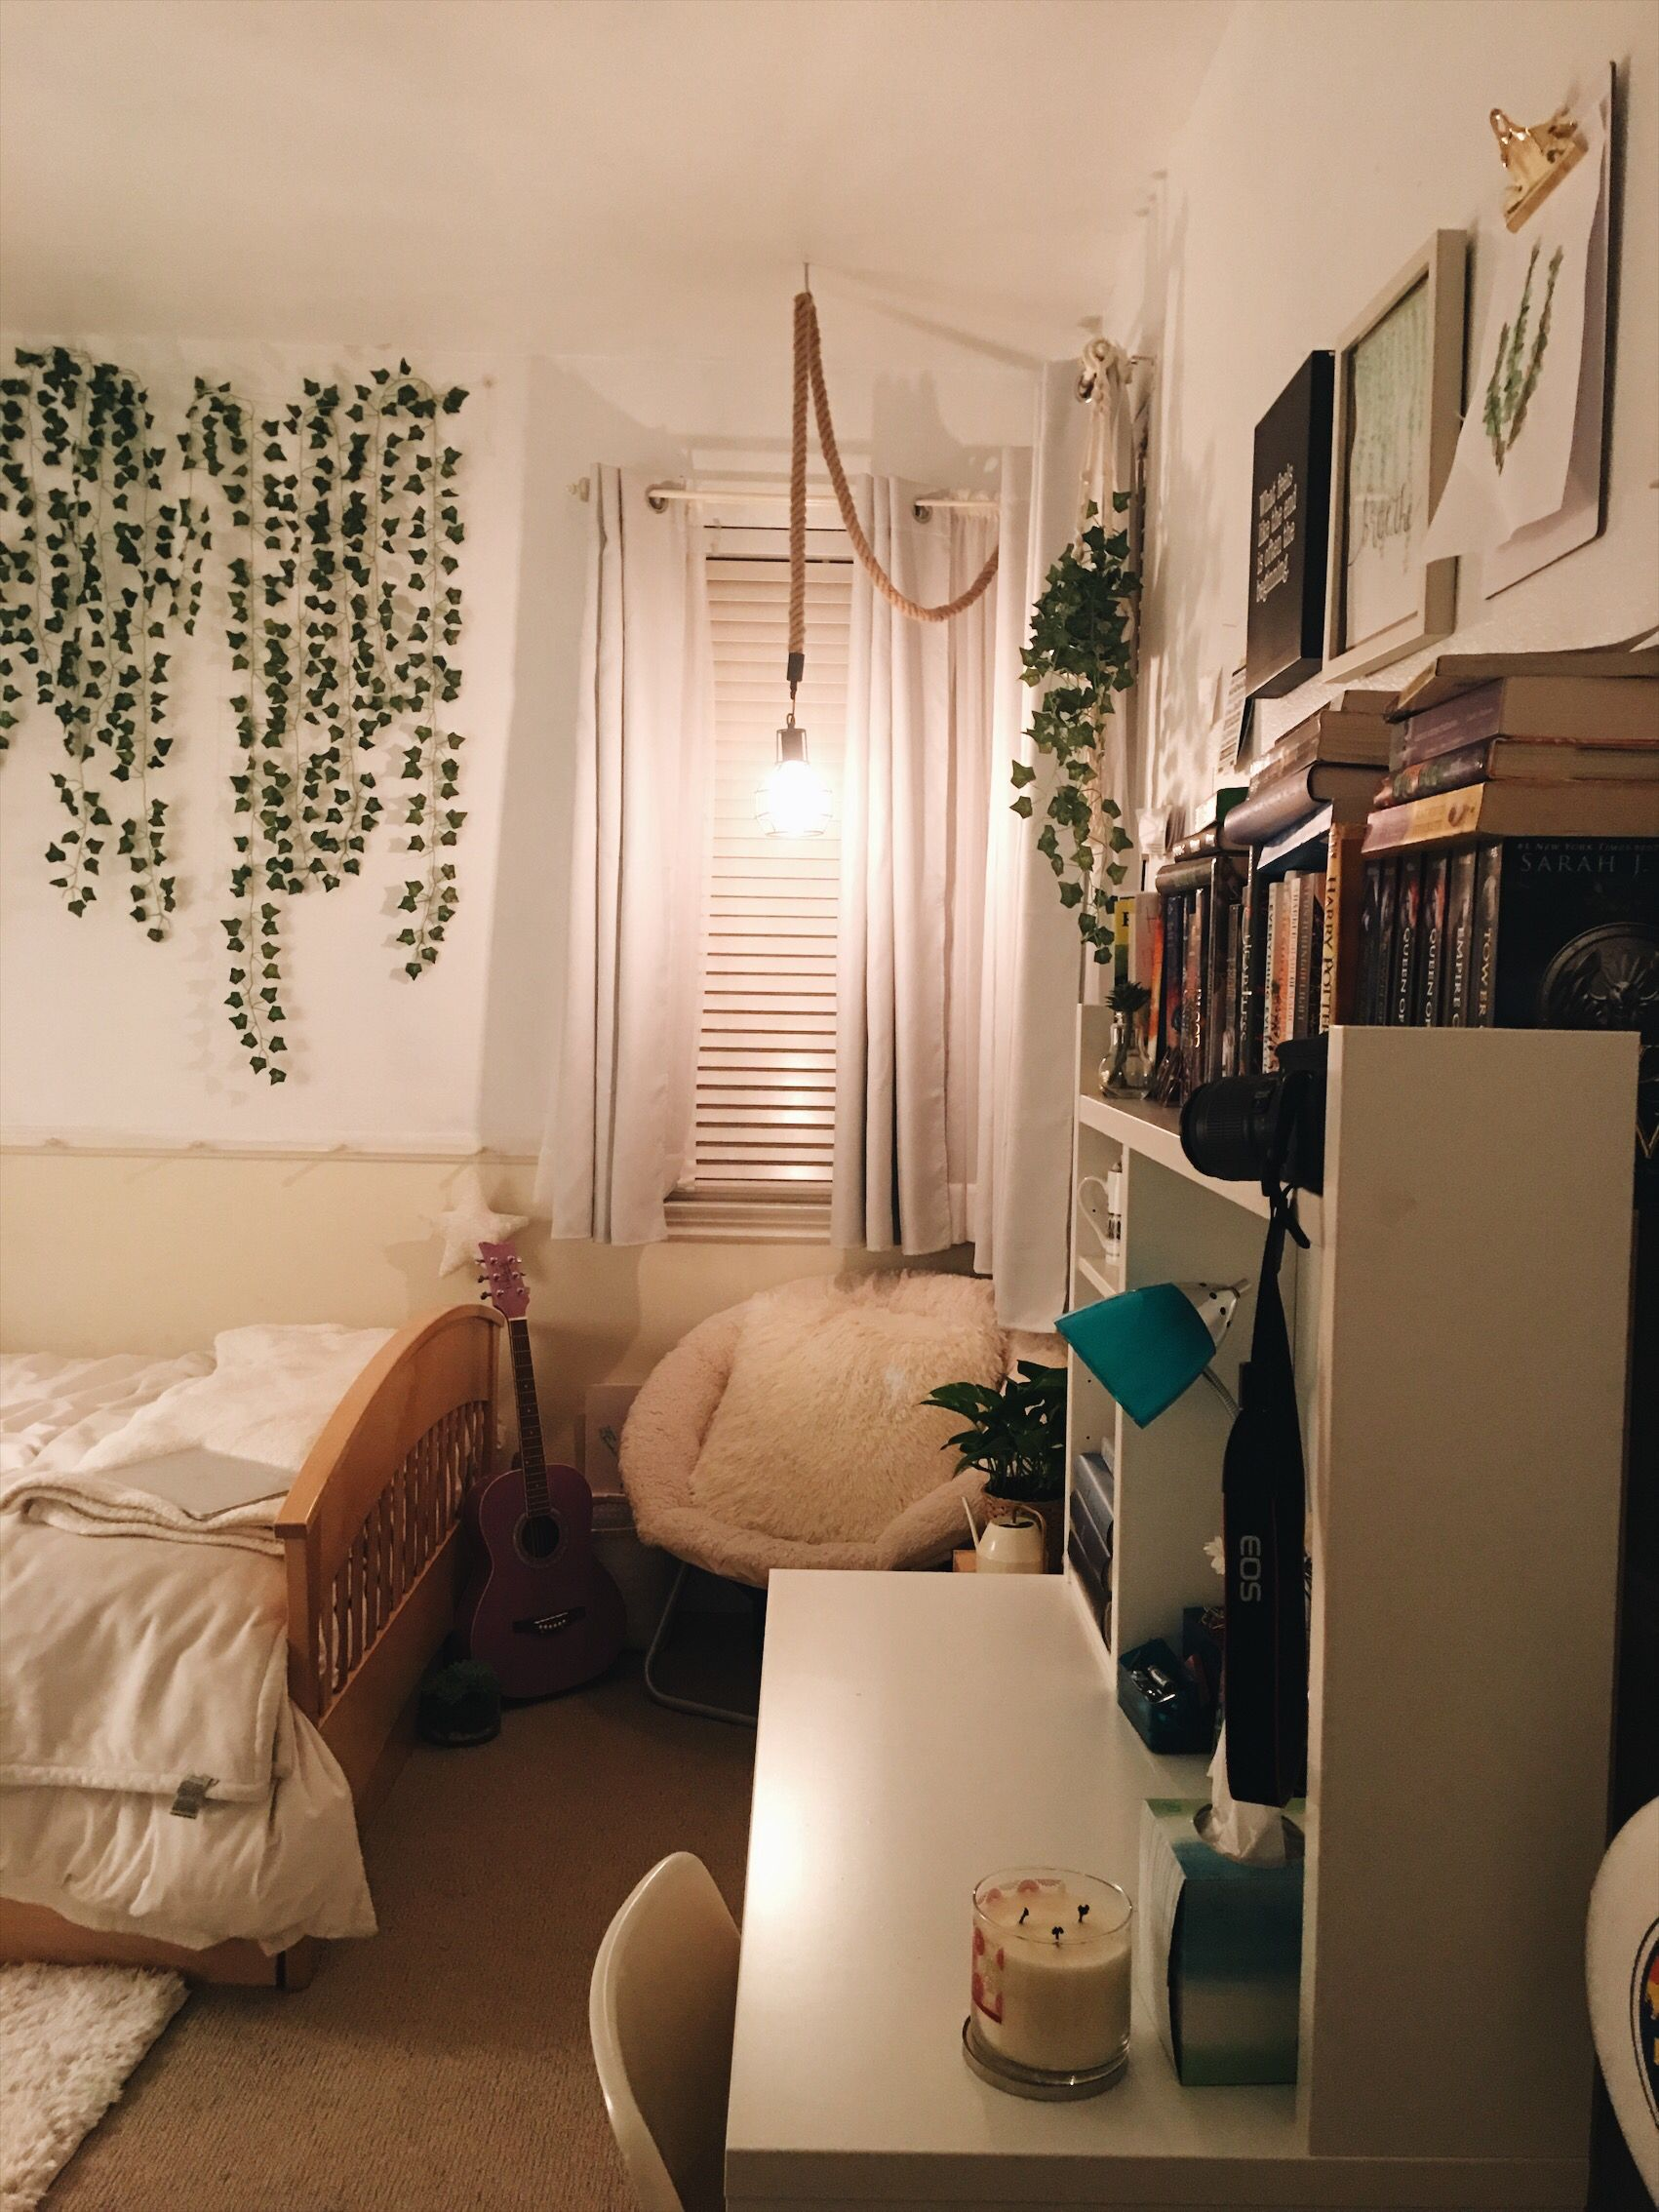 I pretty much finished my room and I'm in love💕 | Dorm ... on Room Decor Ideas De Cuartos Aesthetic id=59715